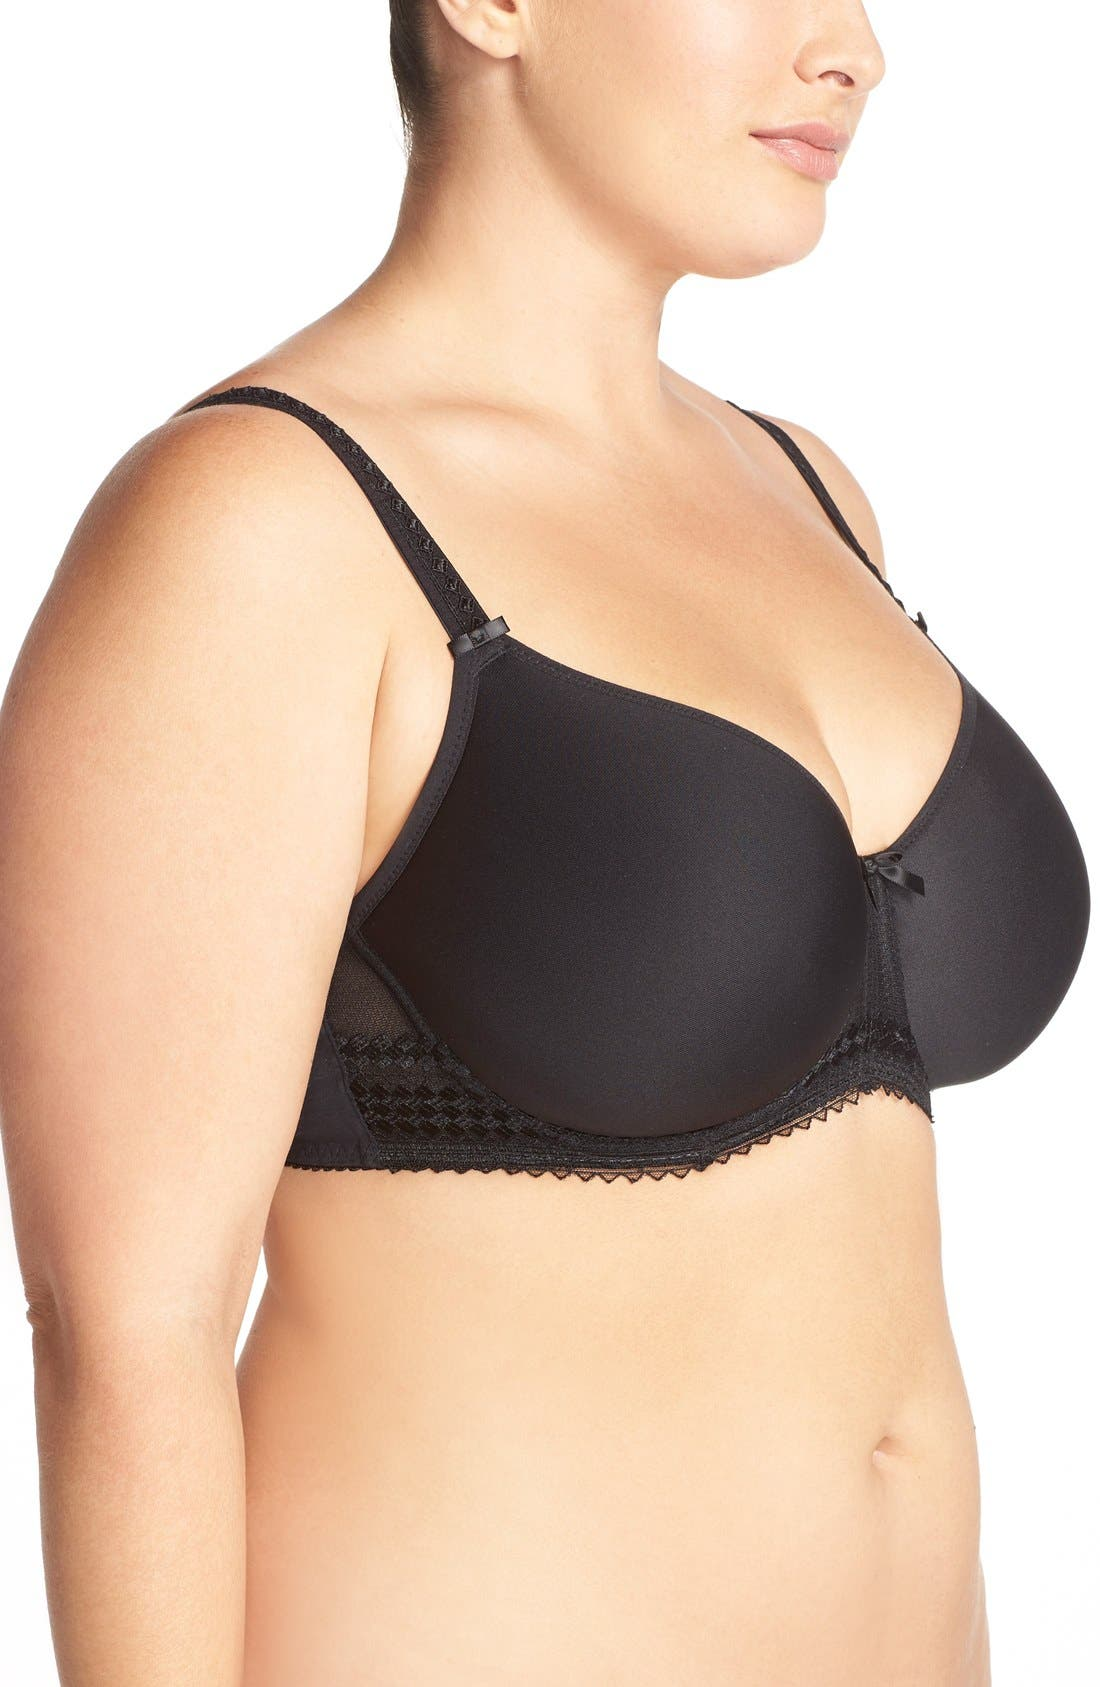 Alternate Image 3  - Fantasie 'Rebecca' Contour Underwire Bra (D Cup & Up)